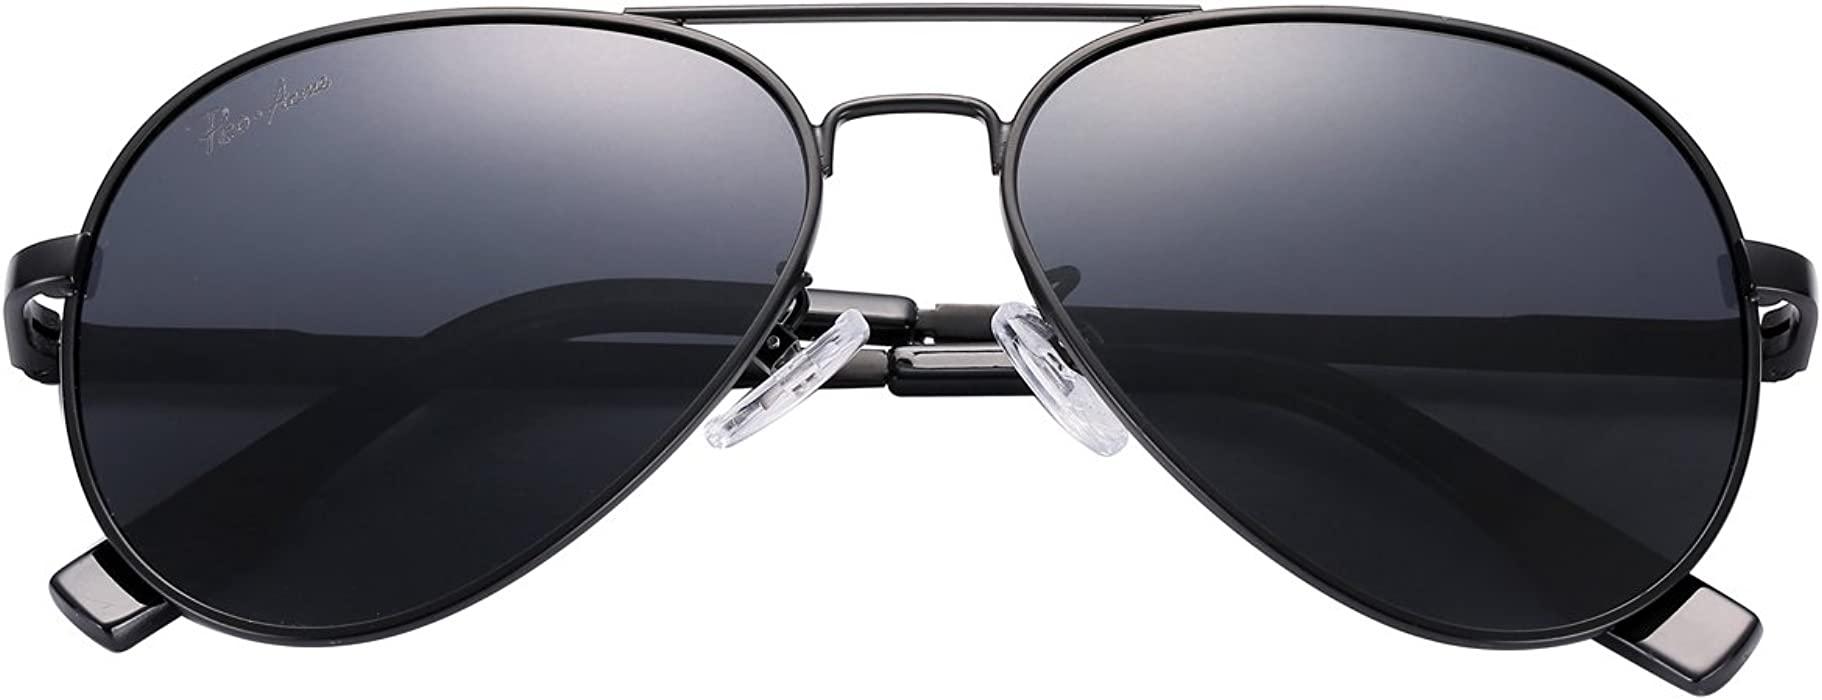 01787b2ea2dd4 Pro Acme Small Polarized Aviator Sunglasses for Adult Small Face and Junior